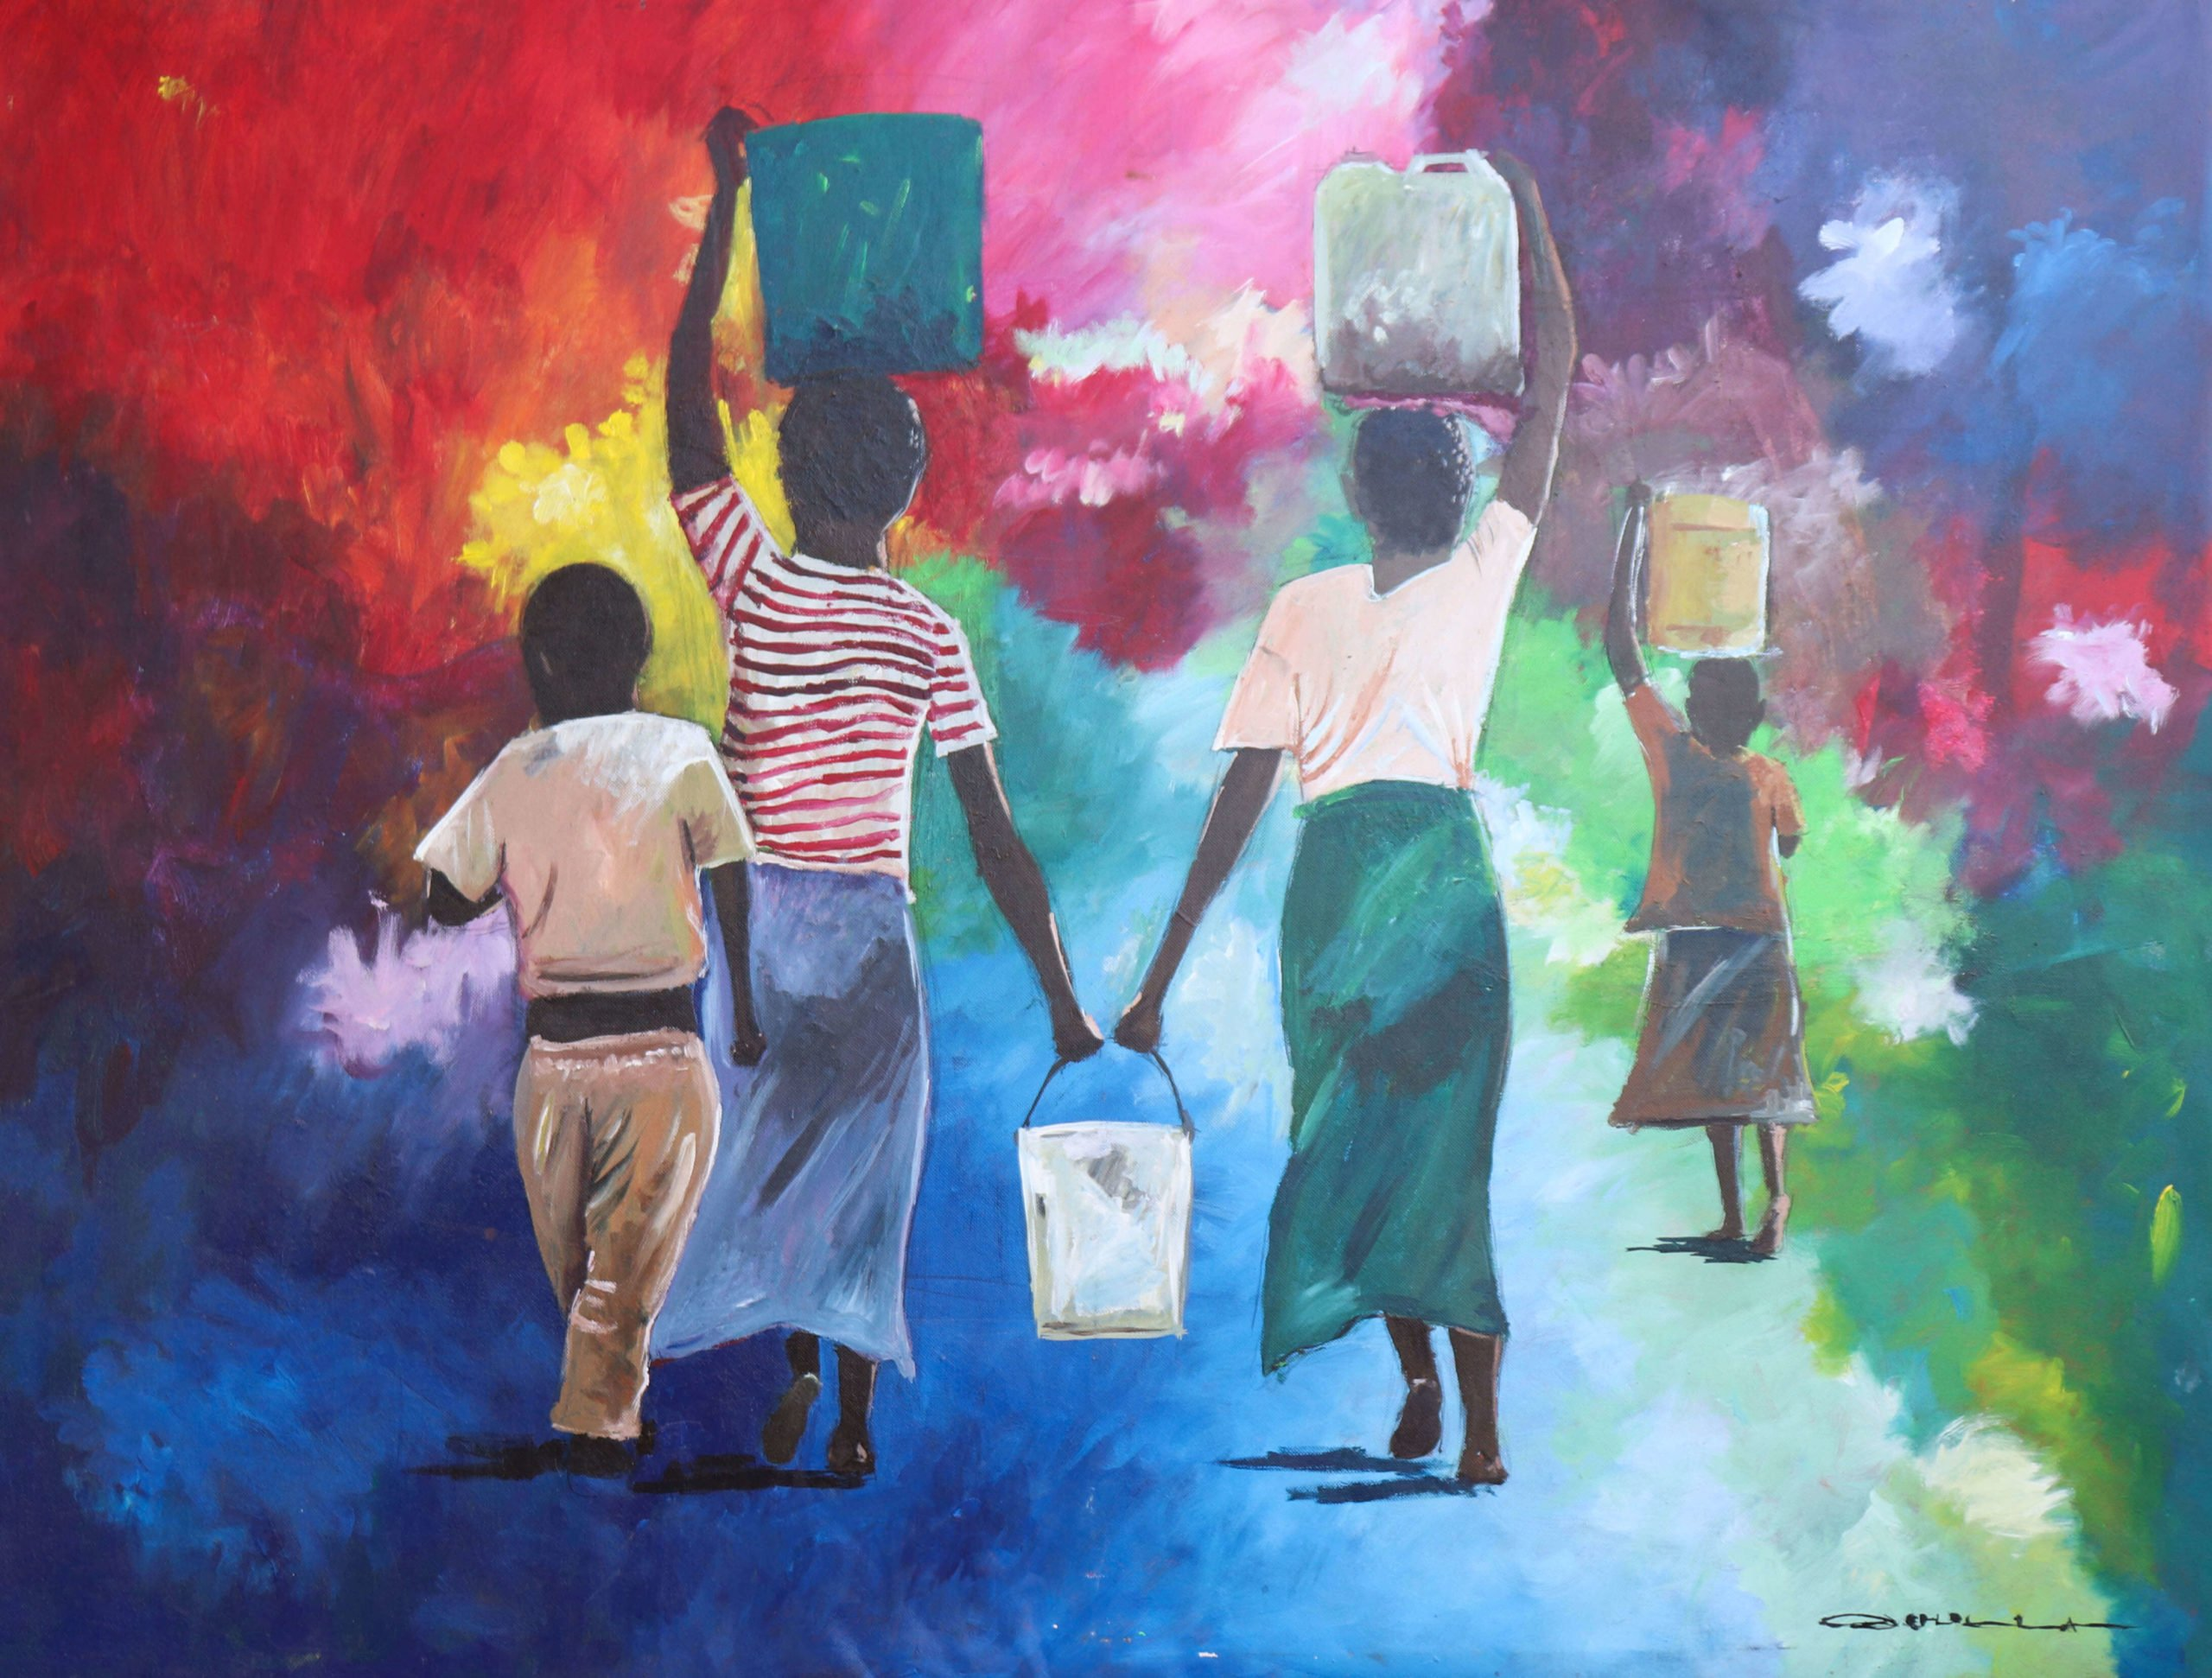 Young Artists from Nairobi